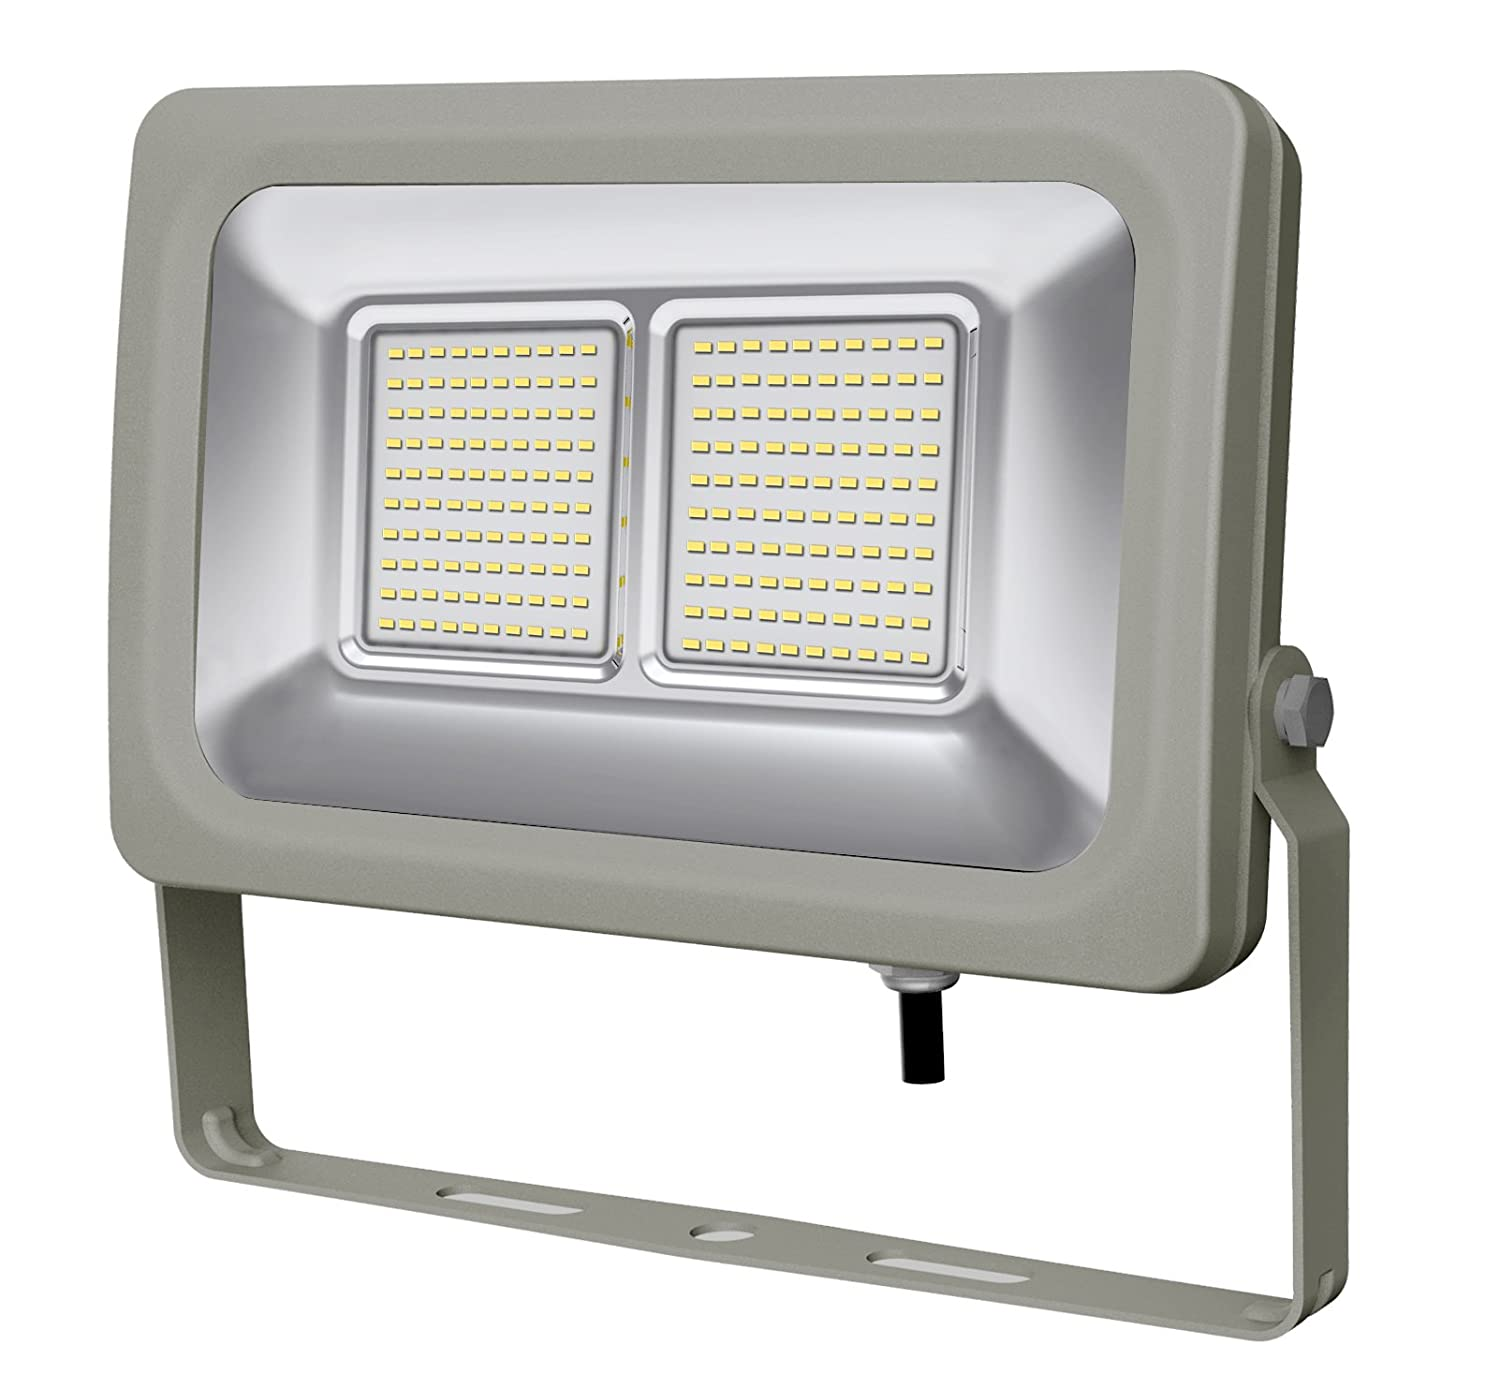 europalamp fl5208 Proyector LED Exterior o interior 100 W aluminio ...